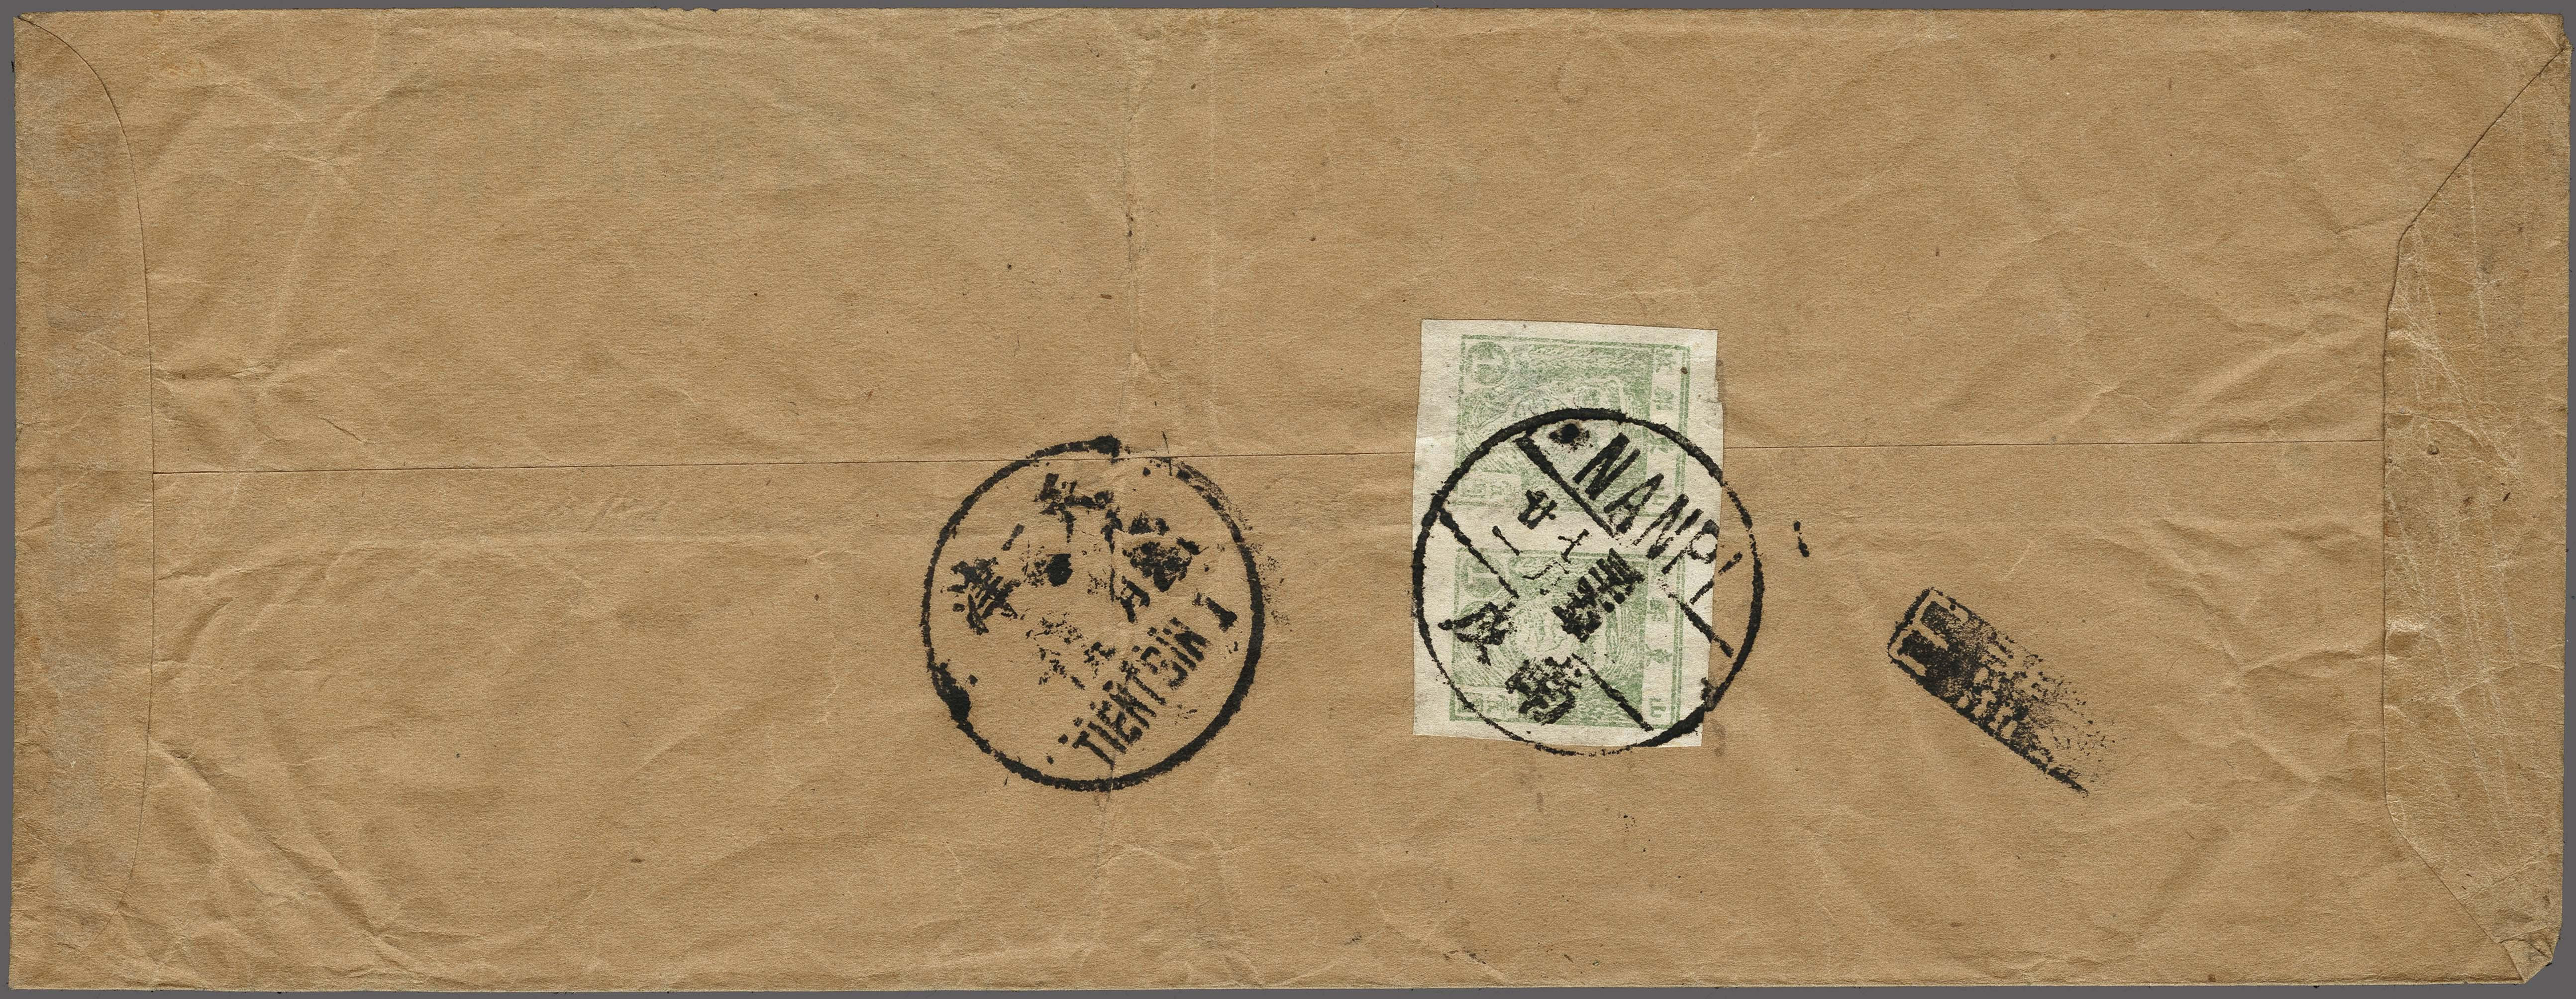 Lot 53 - China China Eastern Provinces -  Corinphila Veilingen Auction 250-253 - Day 1 - Foreign countries